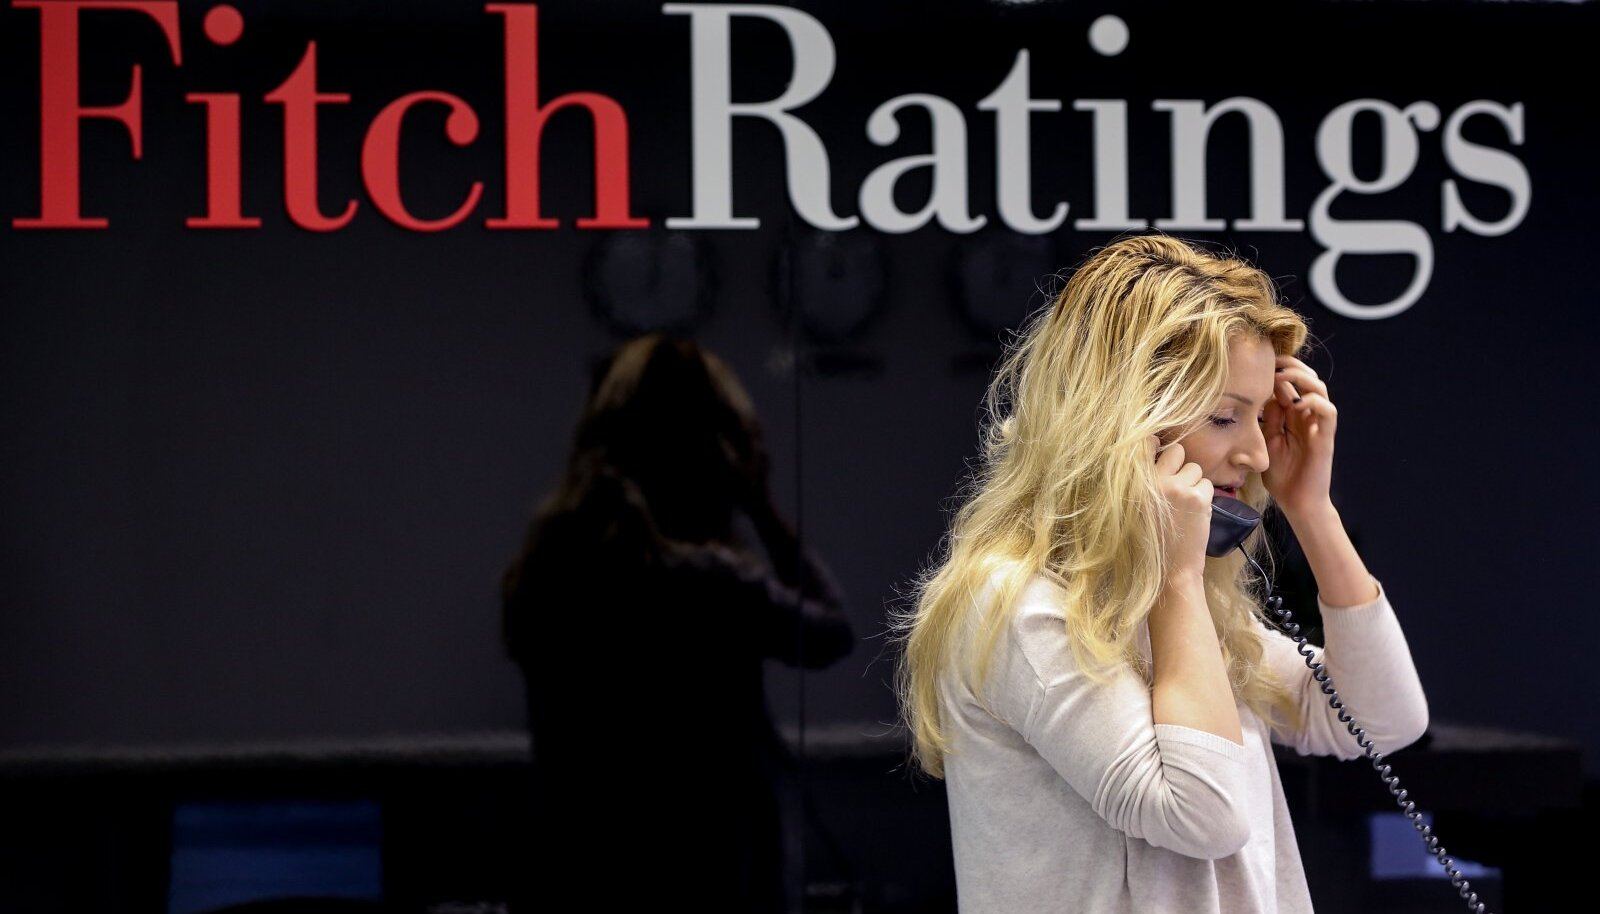 Fitch Ratings lowers Russia's credit ratings